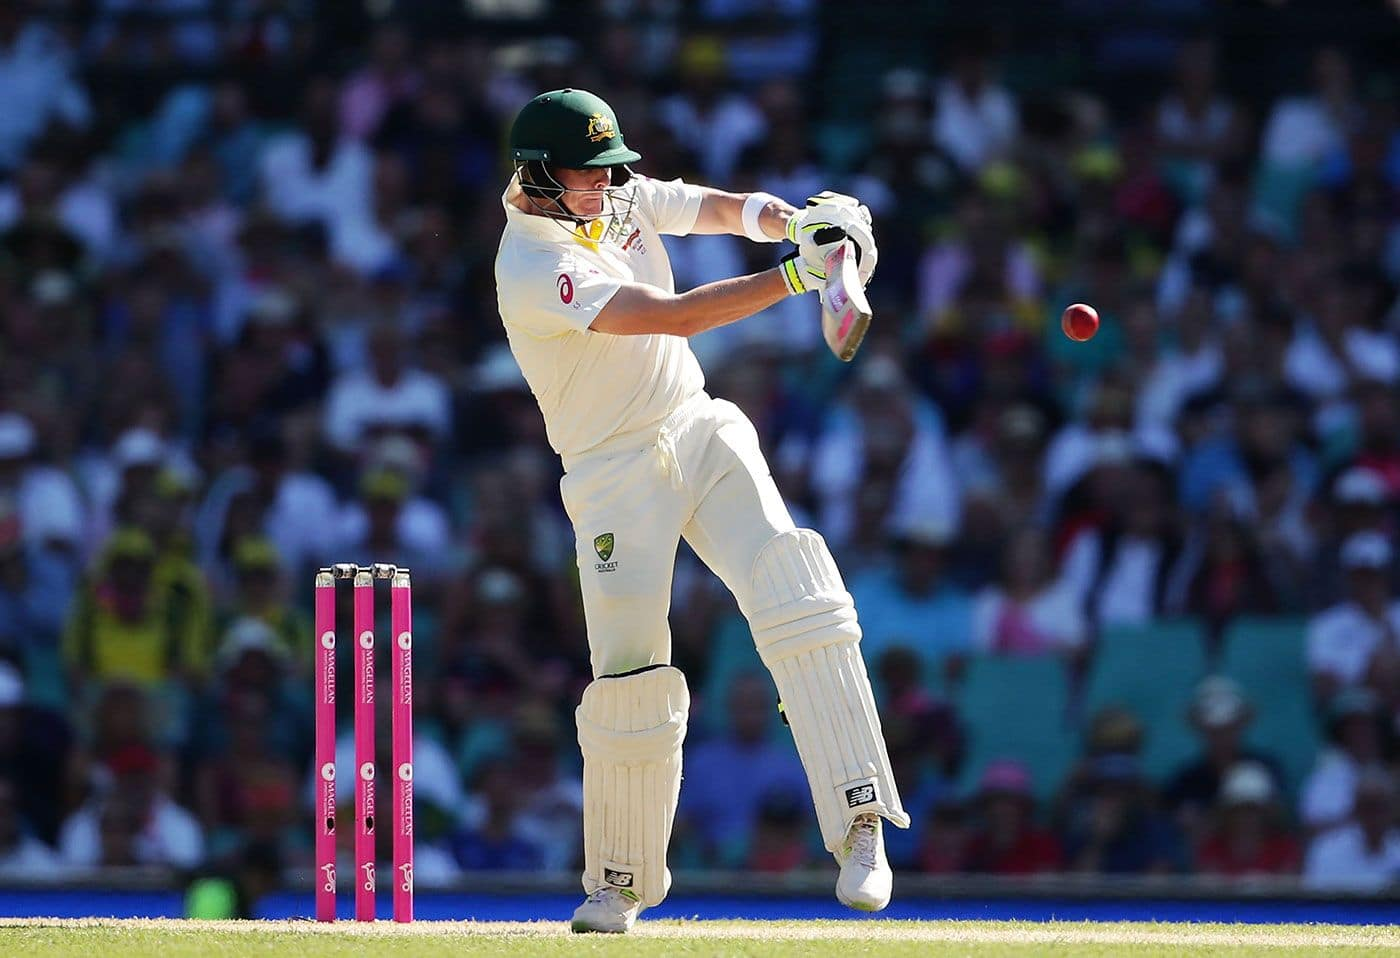 Ashes 2019: Steve Waugh sounds Steve Smith warning to England ahead of first Test